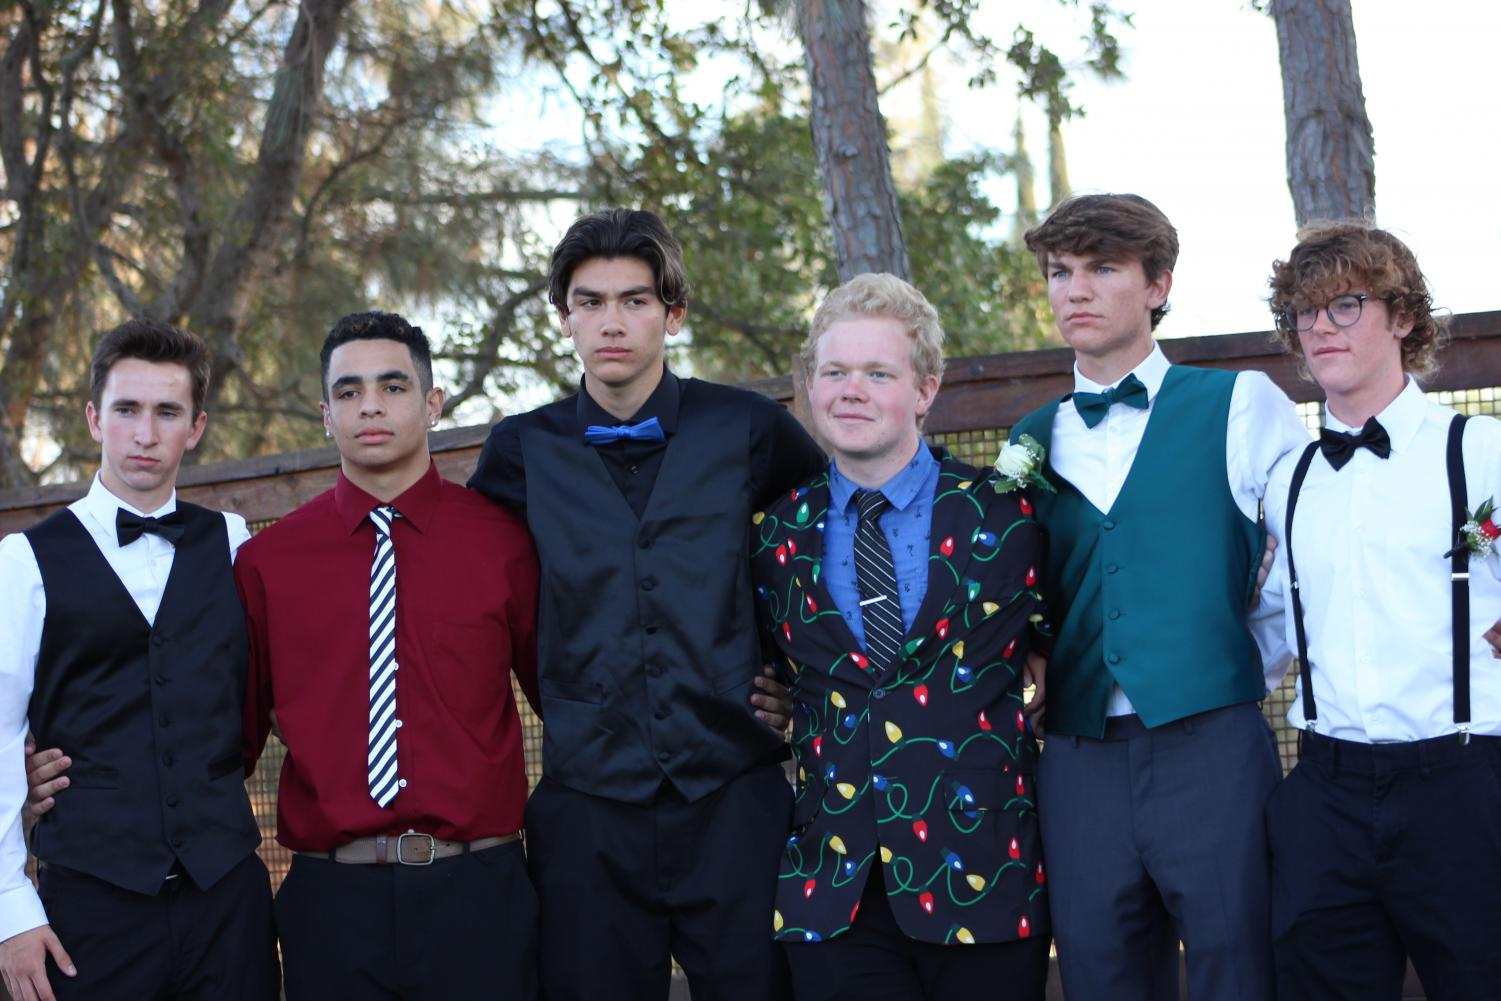 Before Rocklin's Homecoming dance Sept. 29 Whitney students Ryan King, Bryce Simpson, Daniel Parker, David Brosnan and Bennett Woodward pose with Rocklin student Quincy Dungan. Photo by Adriana Williams.